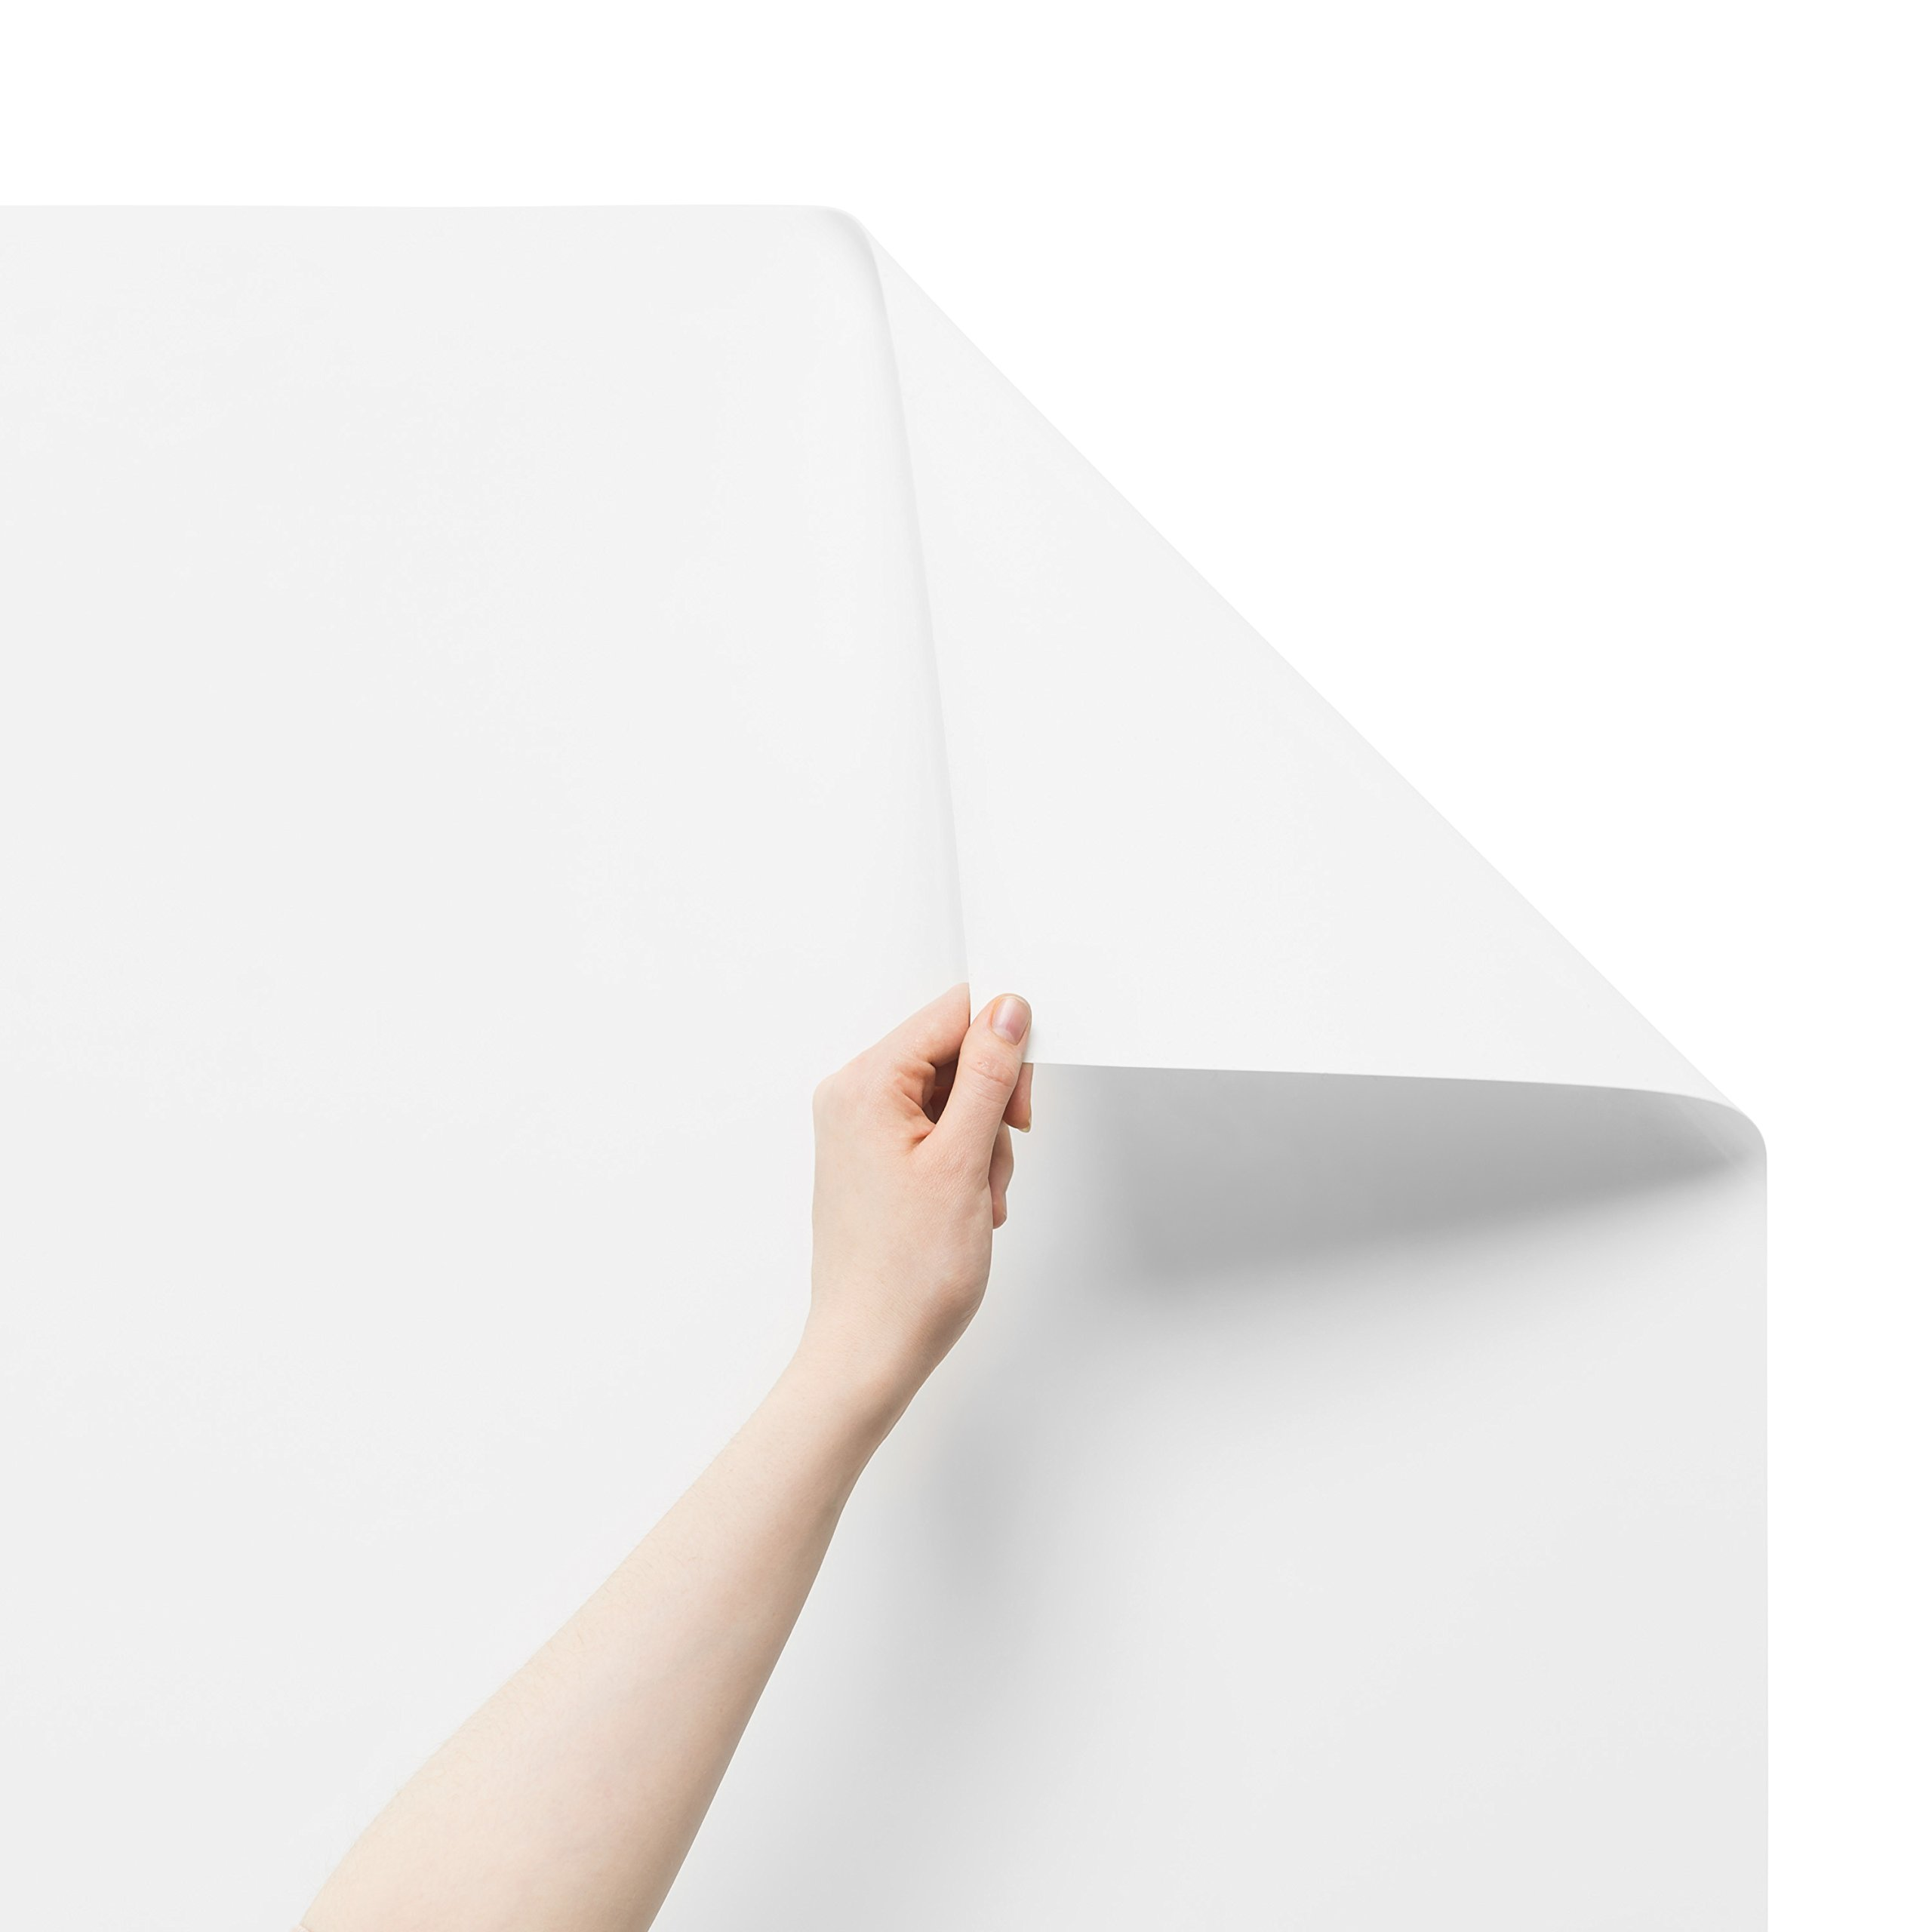 Think Board Premium Whiteboard Film, Peel and Stick, X-Large, White by Think Board (Image #2)